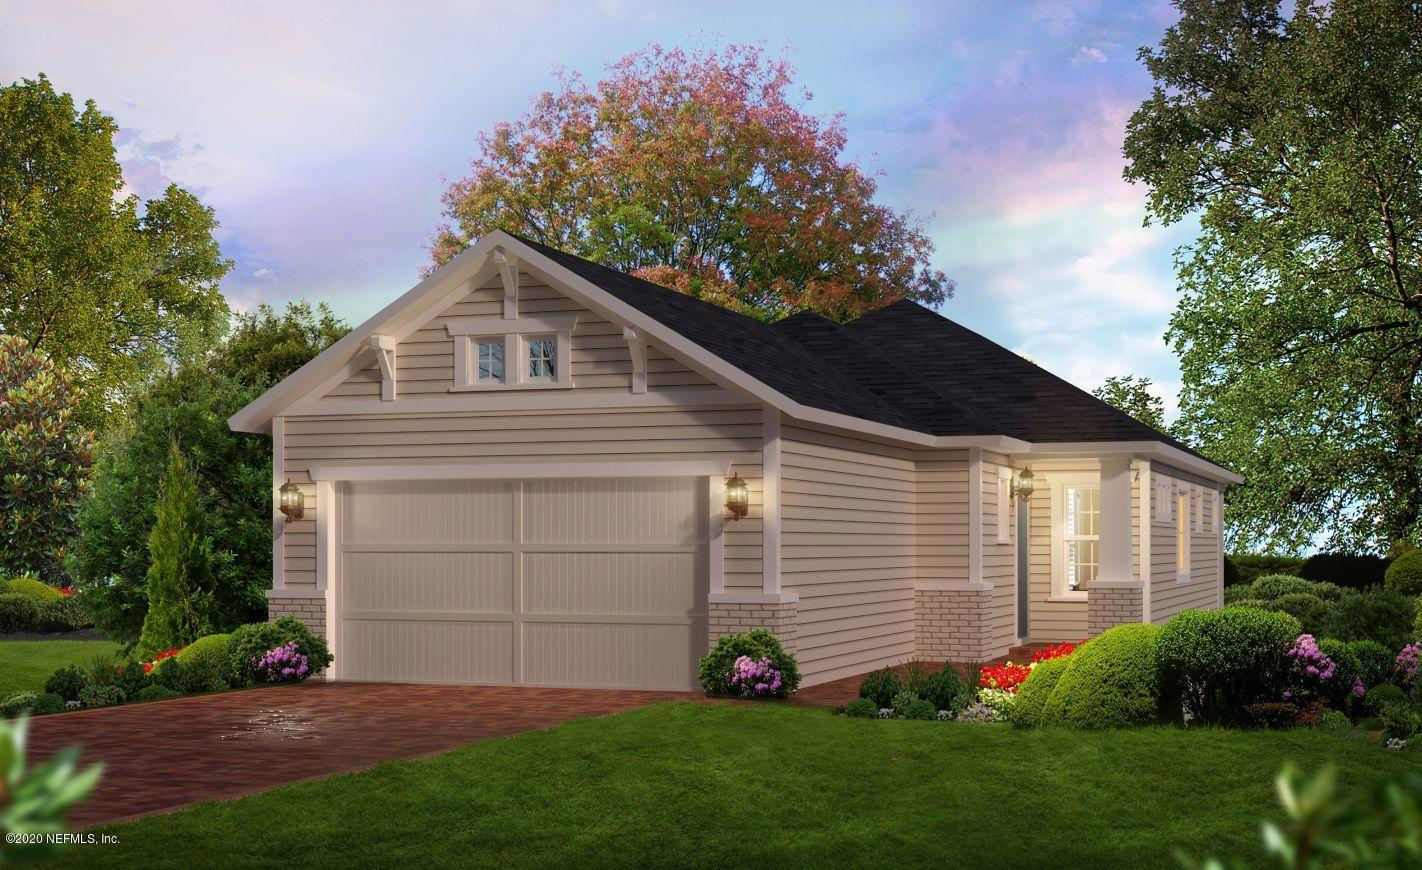 11283 FUSION, JACKSONVILLE, FLORIDA 32256, 3 Bedrooms Bedrooms, ,2 BathroomsBathrooms,Residential,For sale,FUSION,1059341